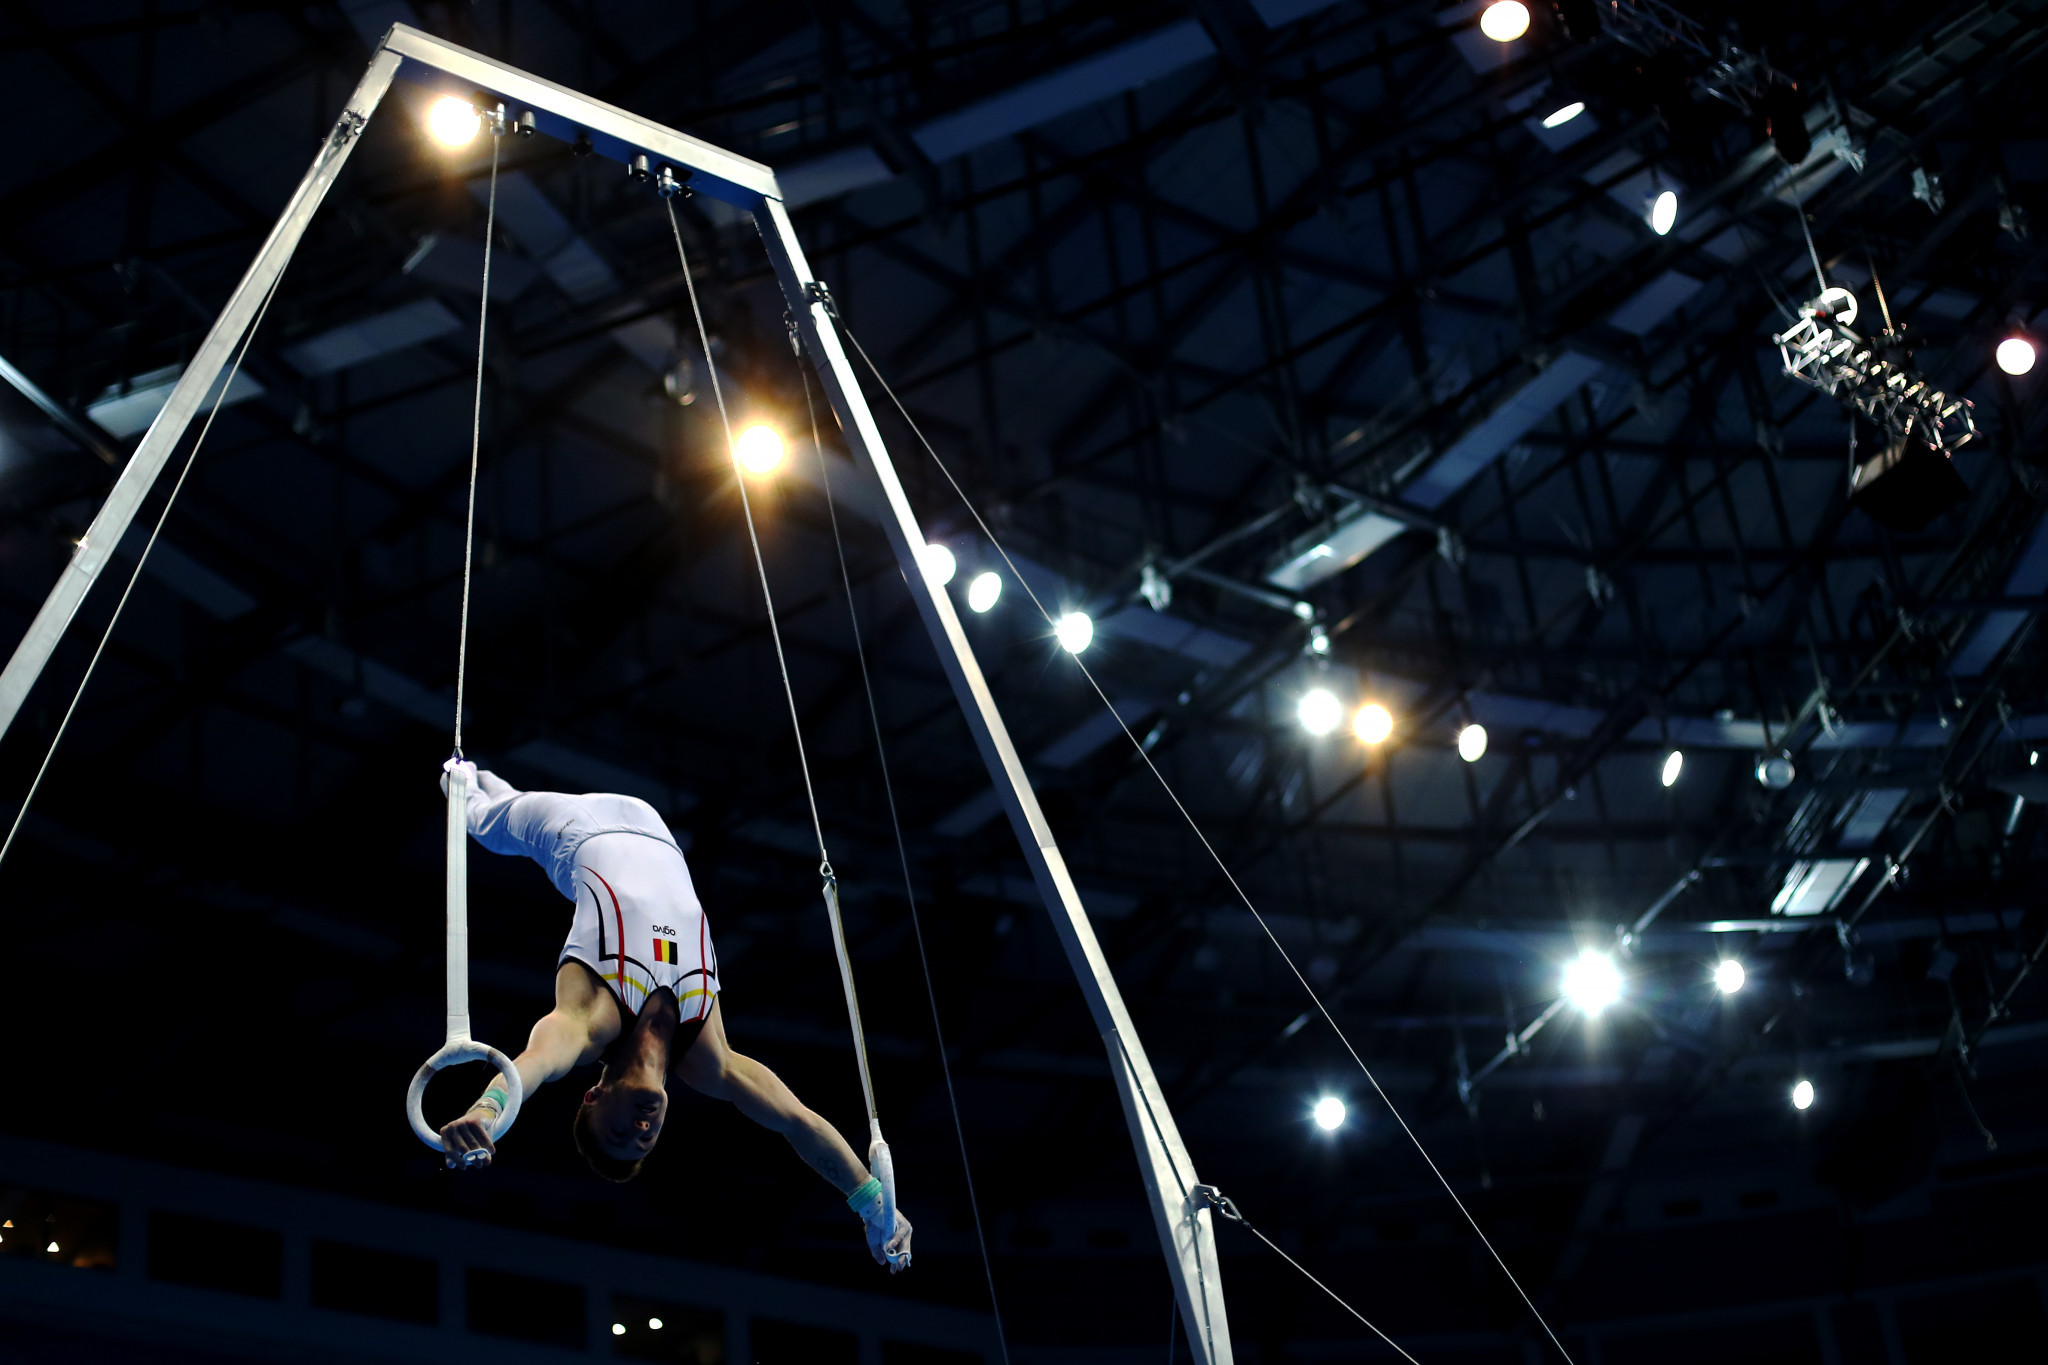 Olympic test event All-Around World Cup in Tokyo cancelled